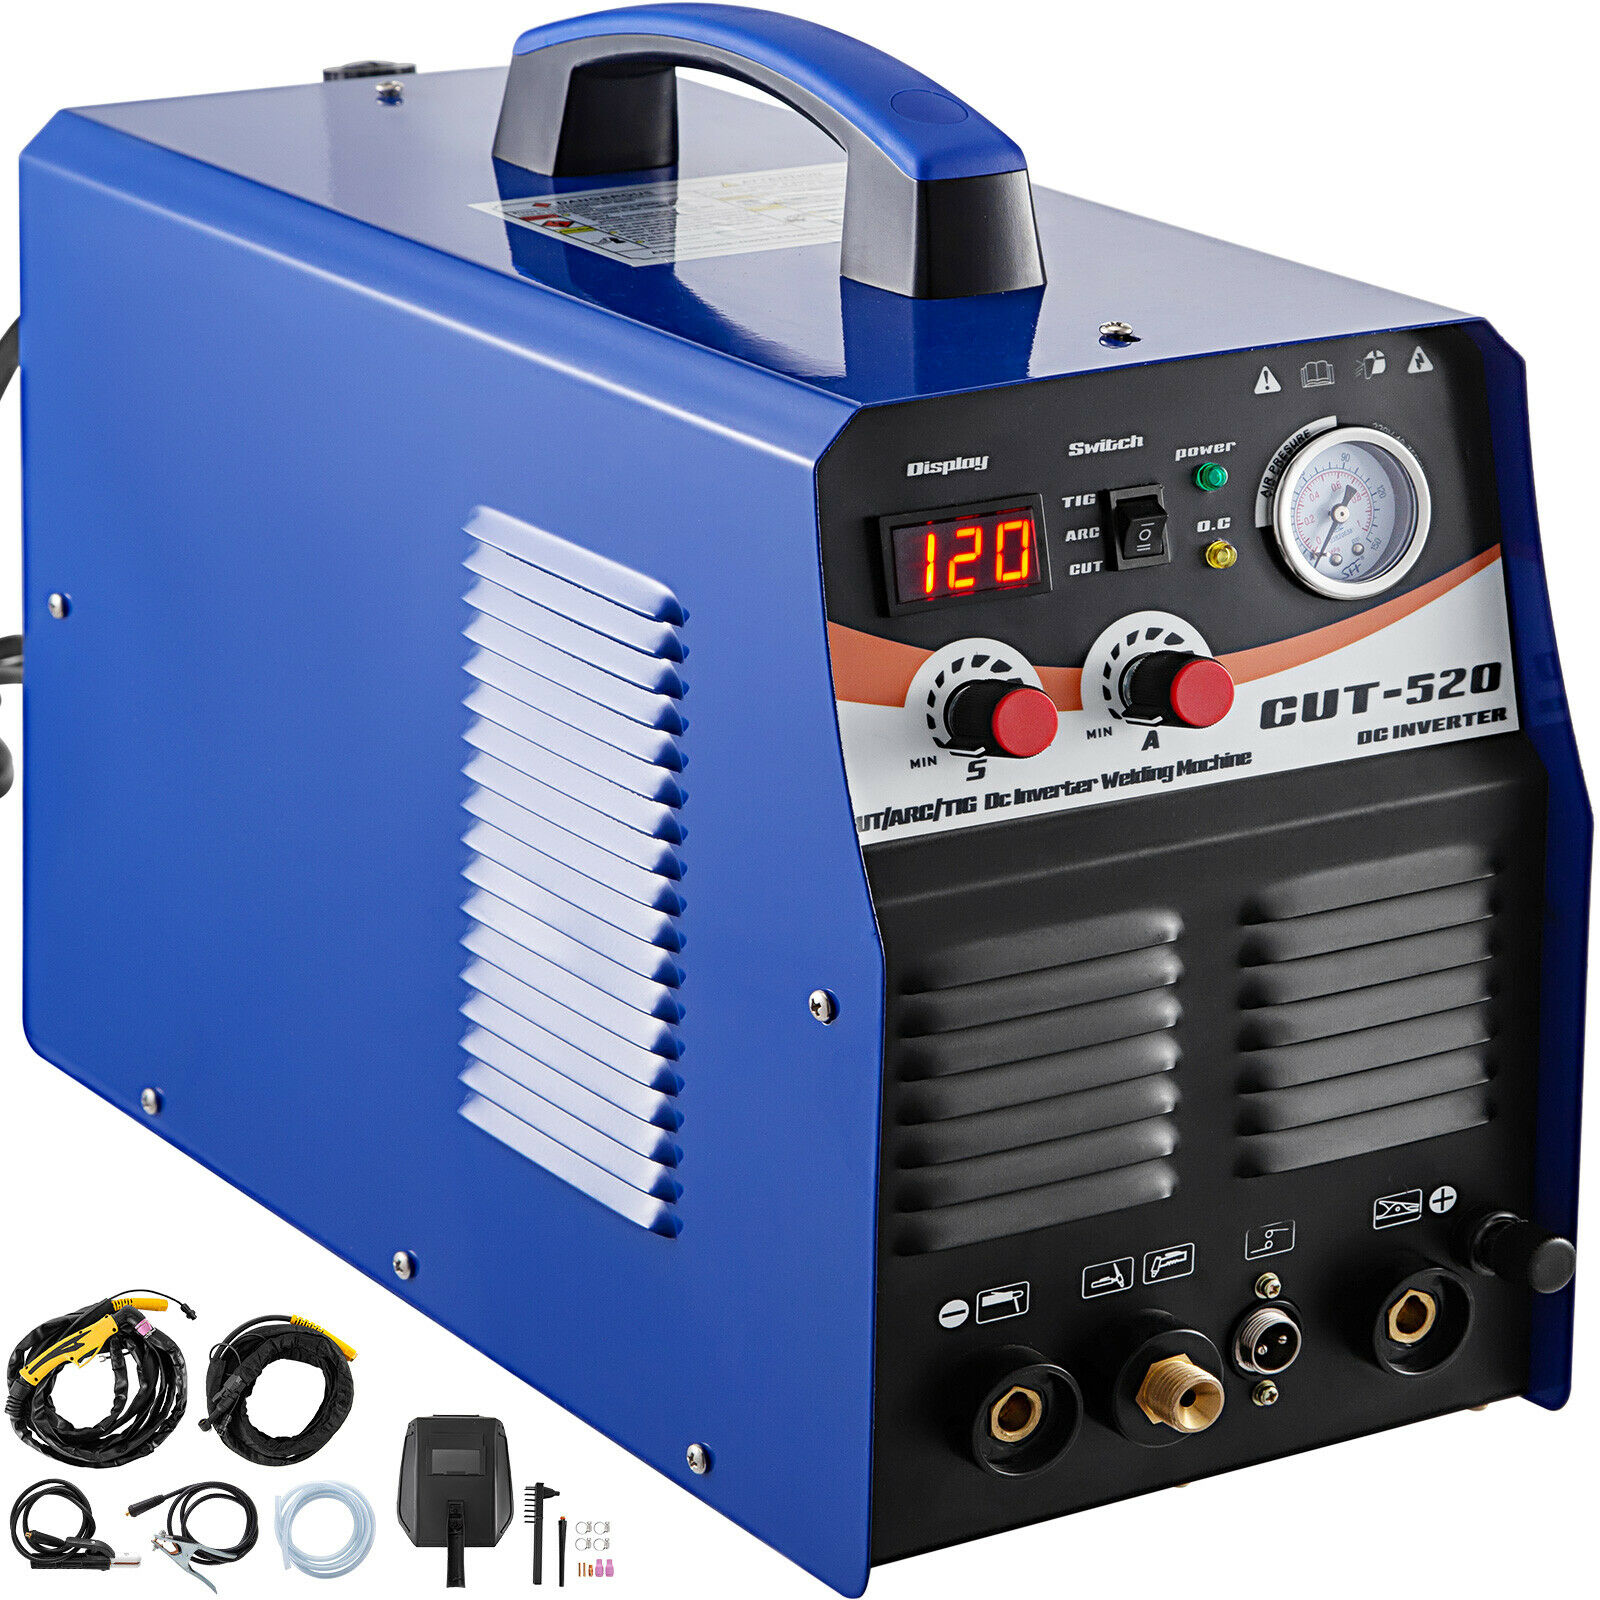 Plasma Cutter Tig Welder CT520 TIG MMA 3 In 1 Non-Touch Pilot Arc Torch 110/220V. Buy it now for 345.97